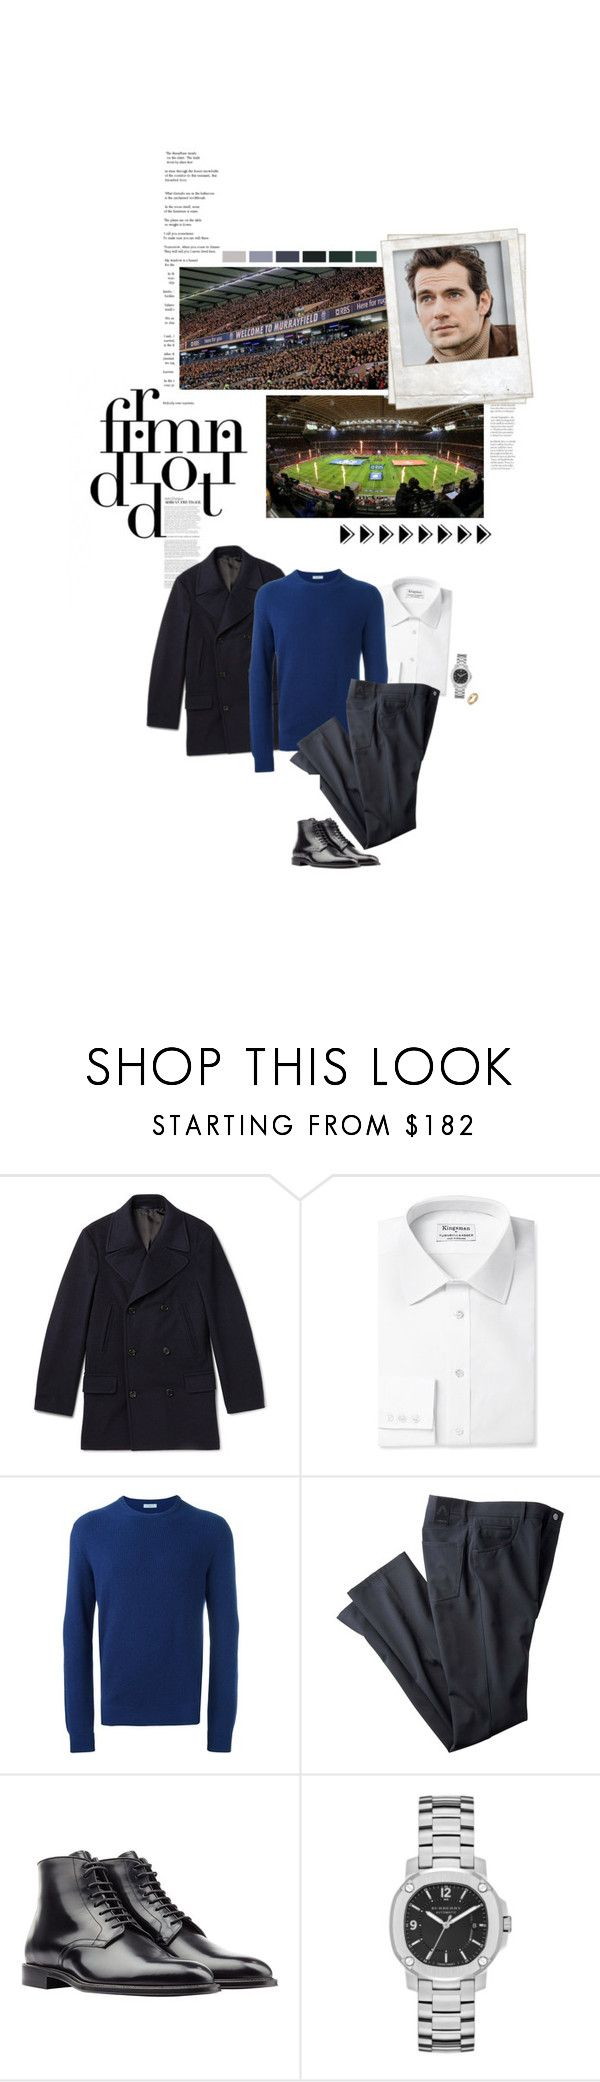 """""""(A) Attends the Scotland v Rugby Six Nations game at Murrayfield Stadium, Edinburgh"""" by immortal-longings ❤ liked on Polyvore featuring Kingsman, malo, Nicholas Kirkwood, Polaroid and Burberry"""